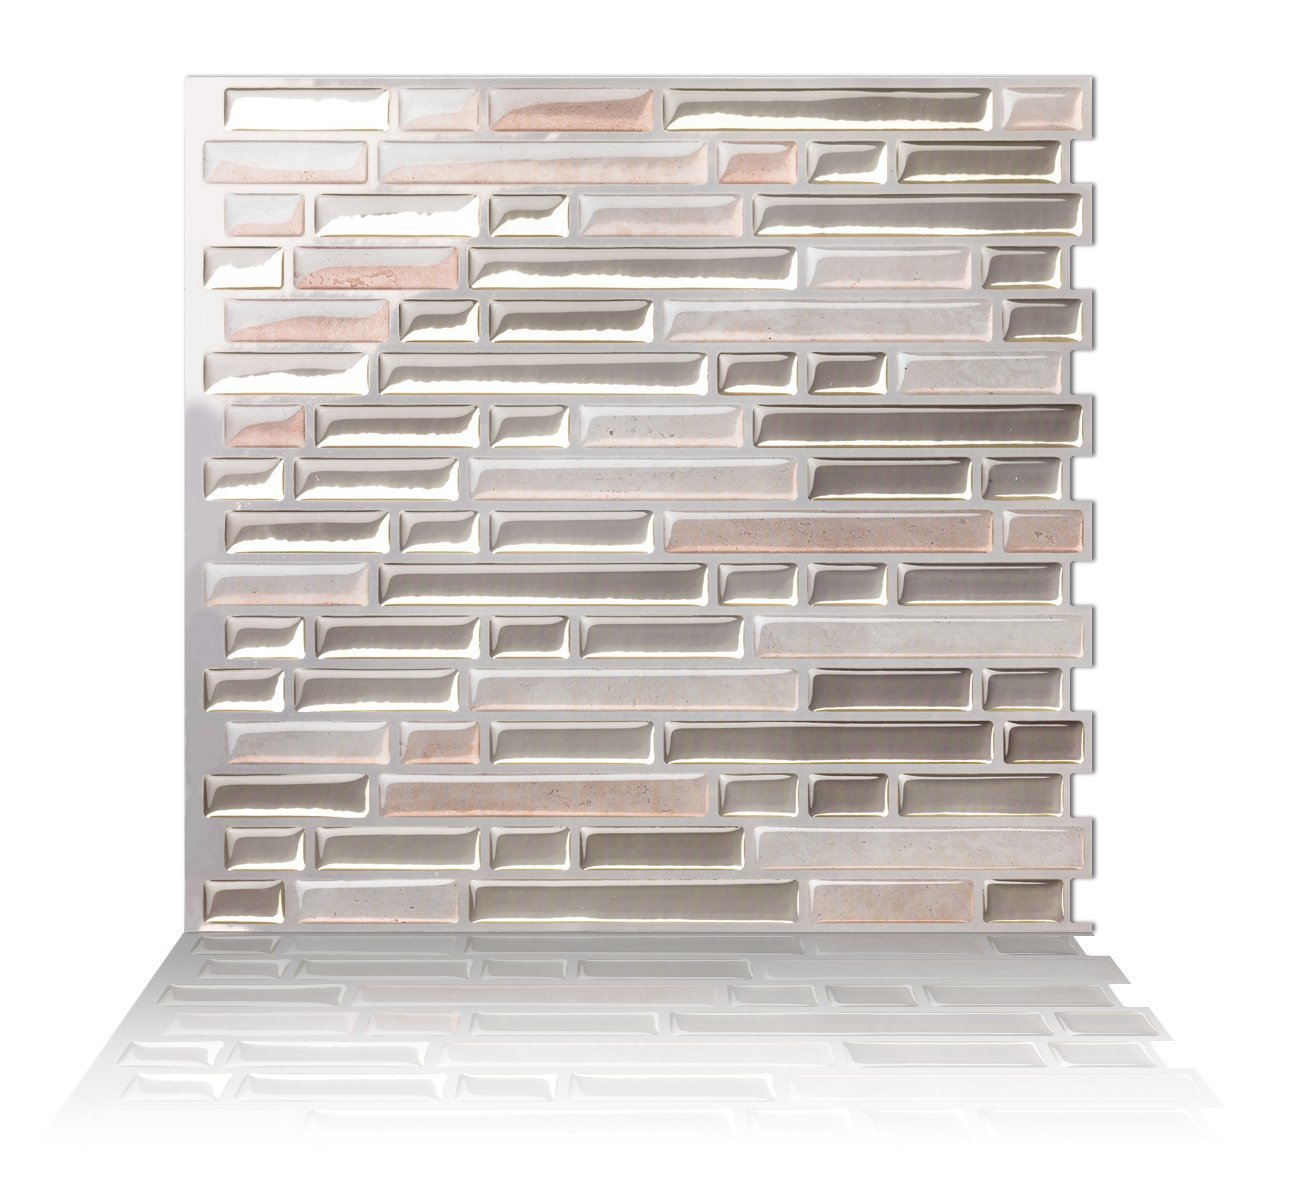 Tic Tac Tile Mosaic Peel and Stick Wall Tile in Random Brick Metal Sand (1 Tile) Tic Tac Tiles AH-BRS02